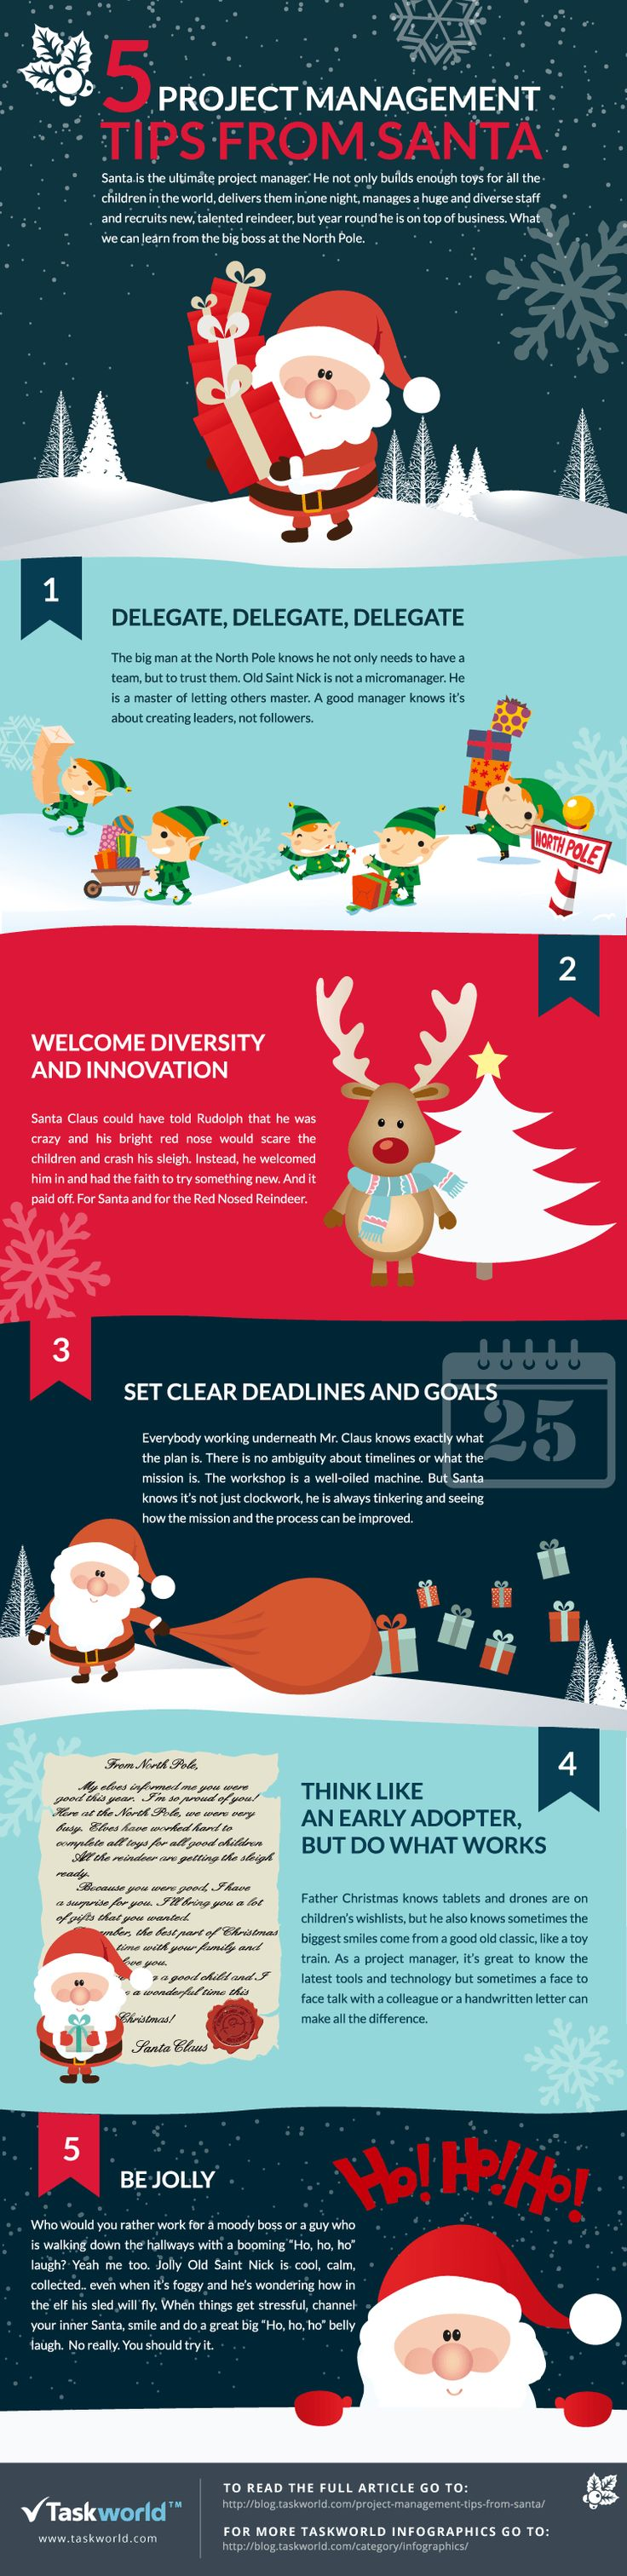 5 Project Management Tips from Santa